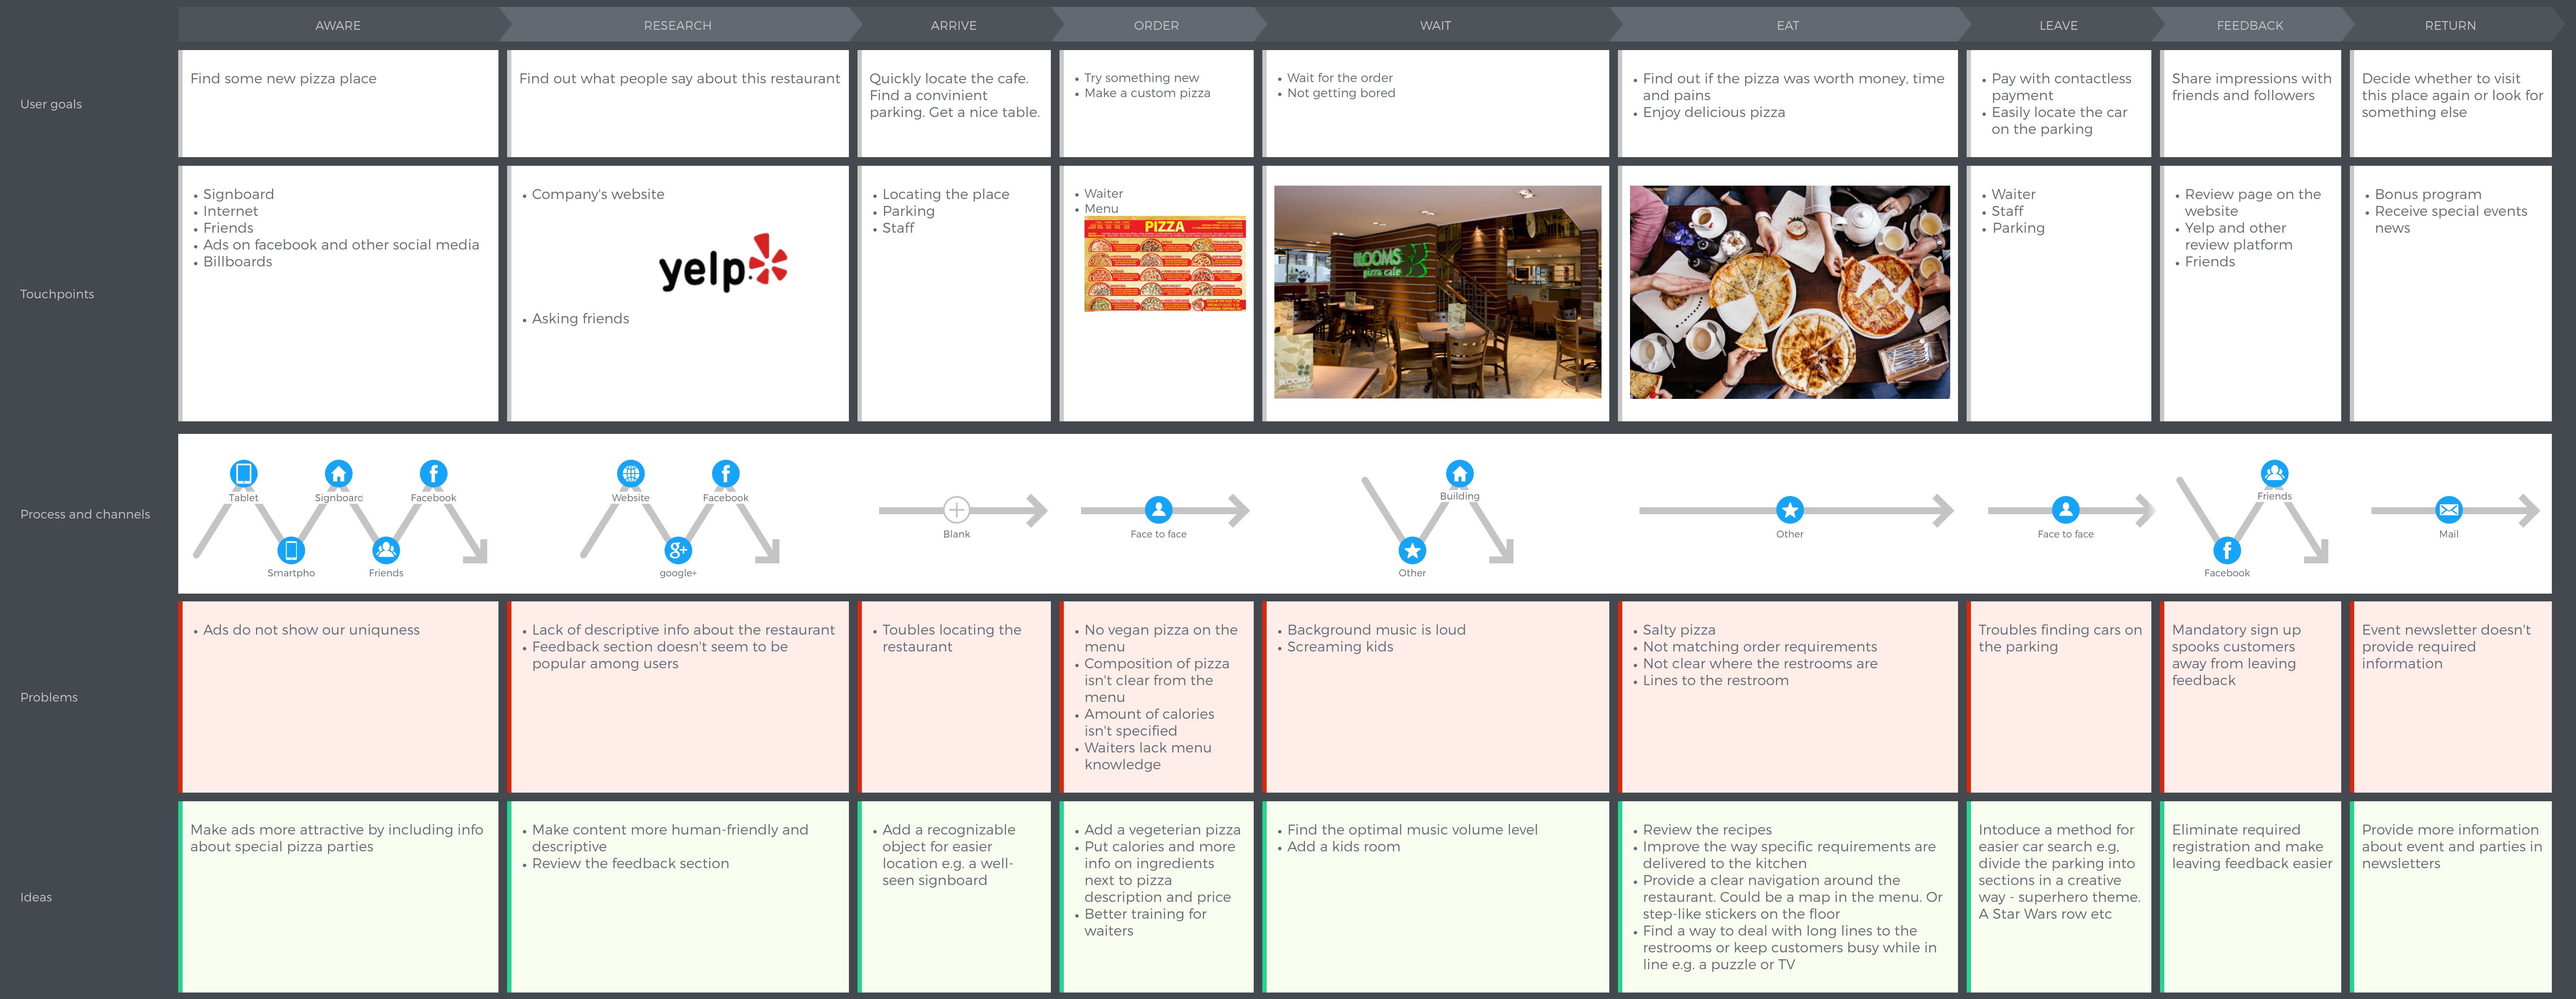 customer-journey-map-problems-ideas